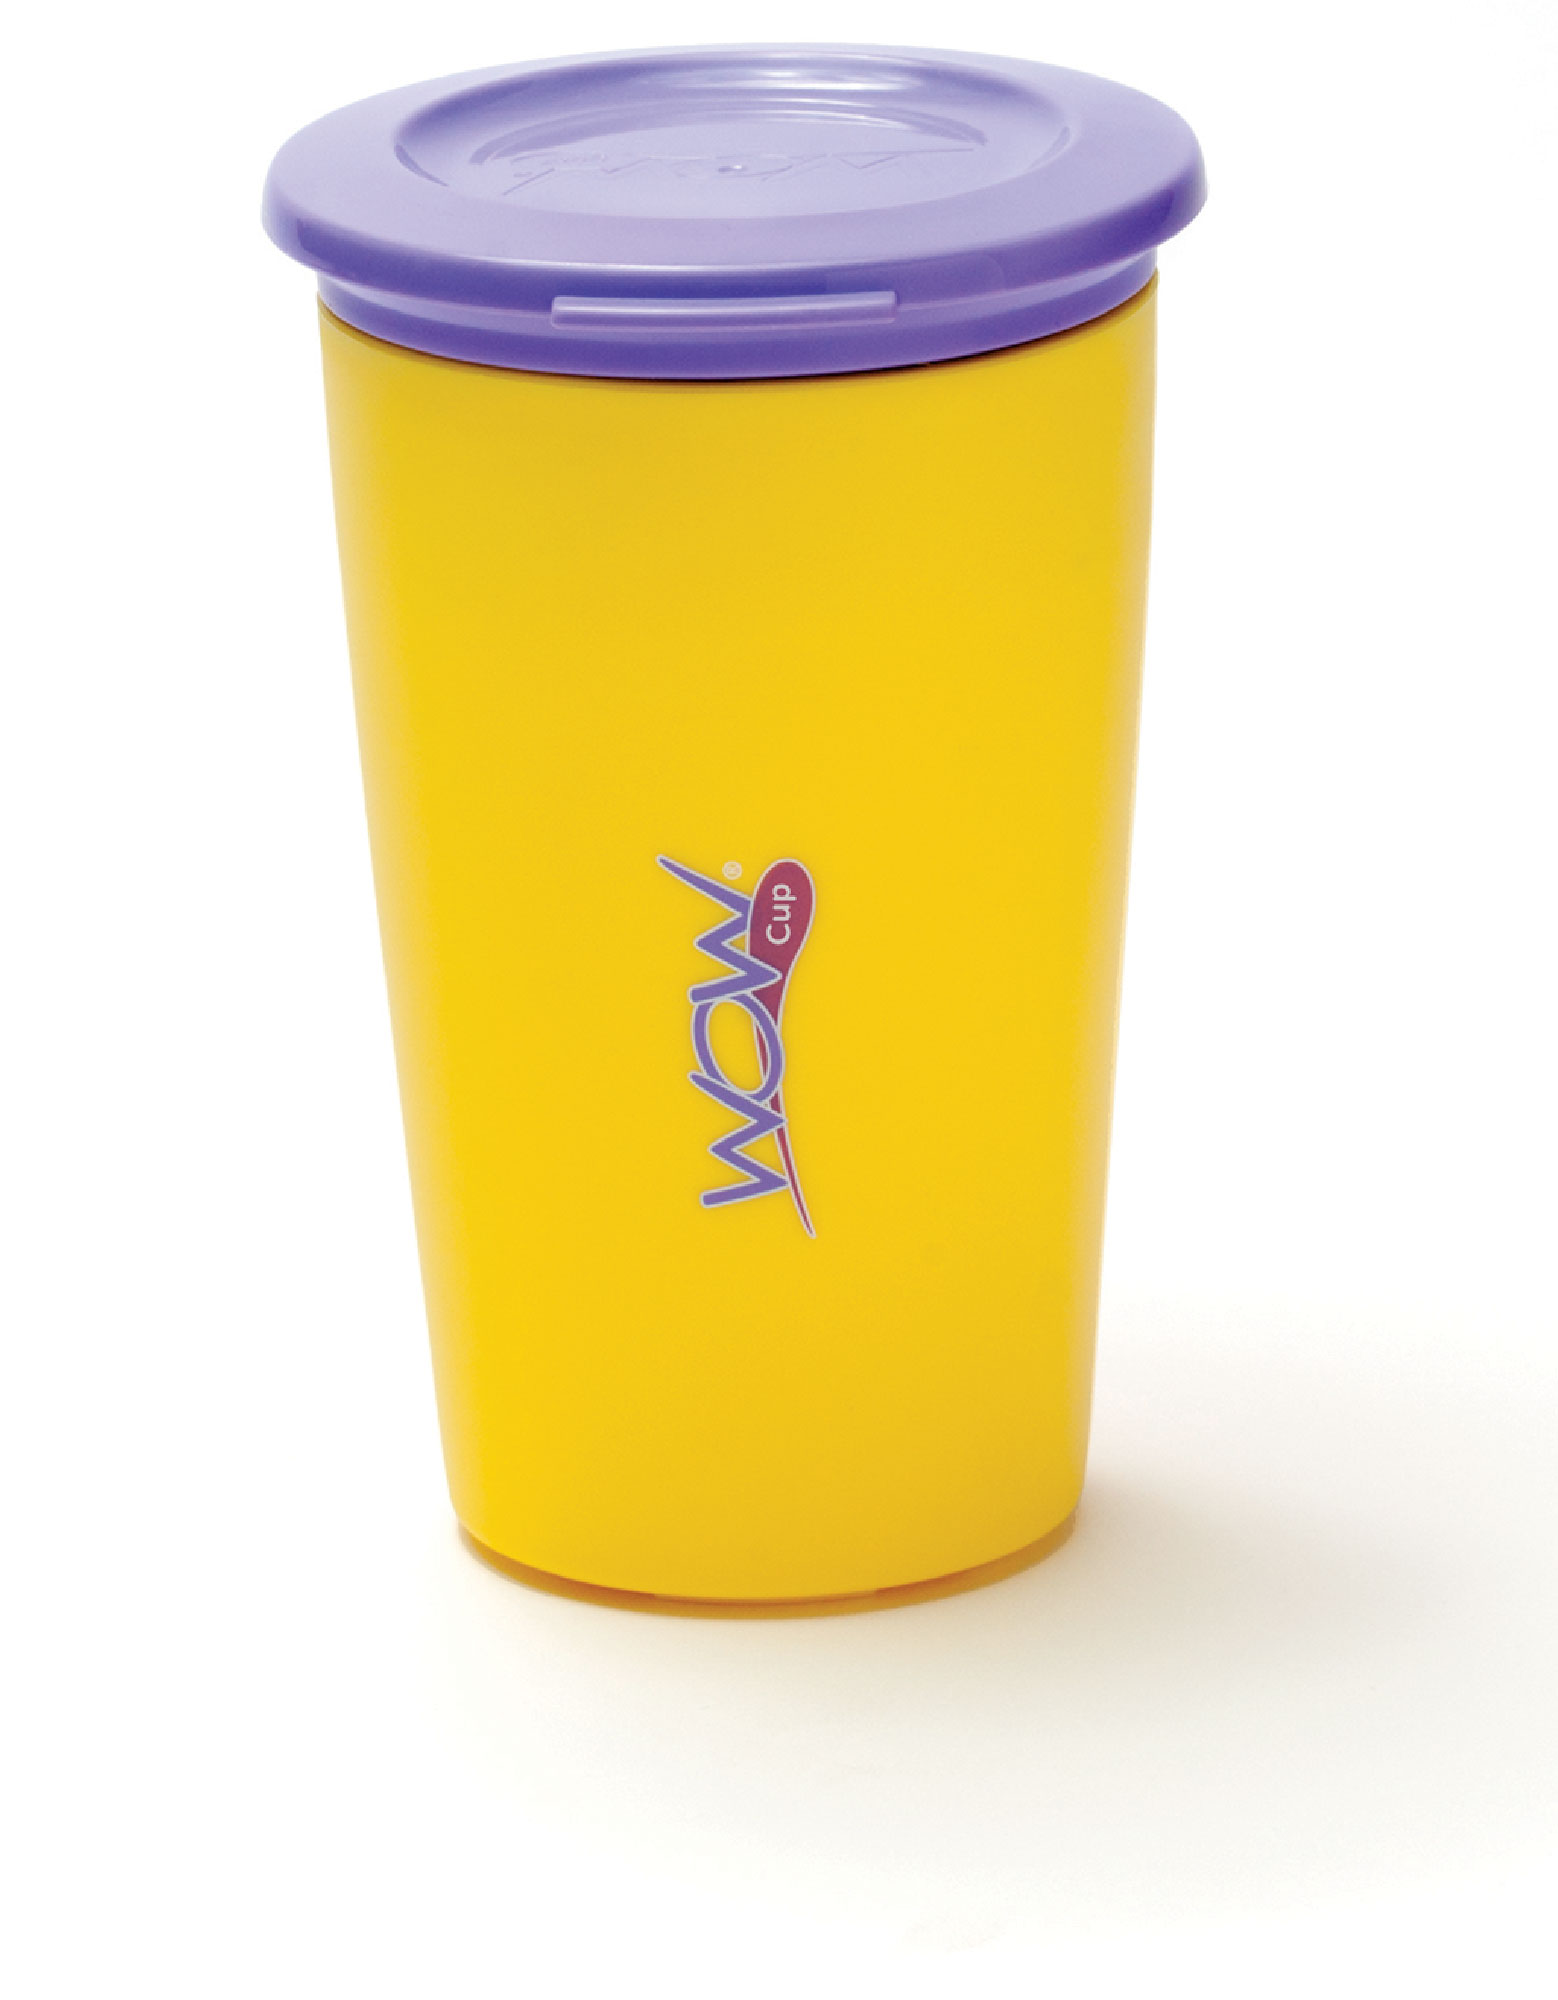 Wow Gear Wow Cup For Kids Yellow Cup / Purple Lid 266 ml